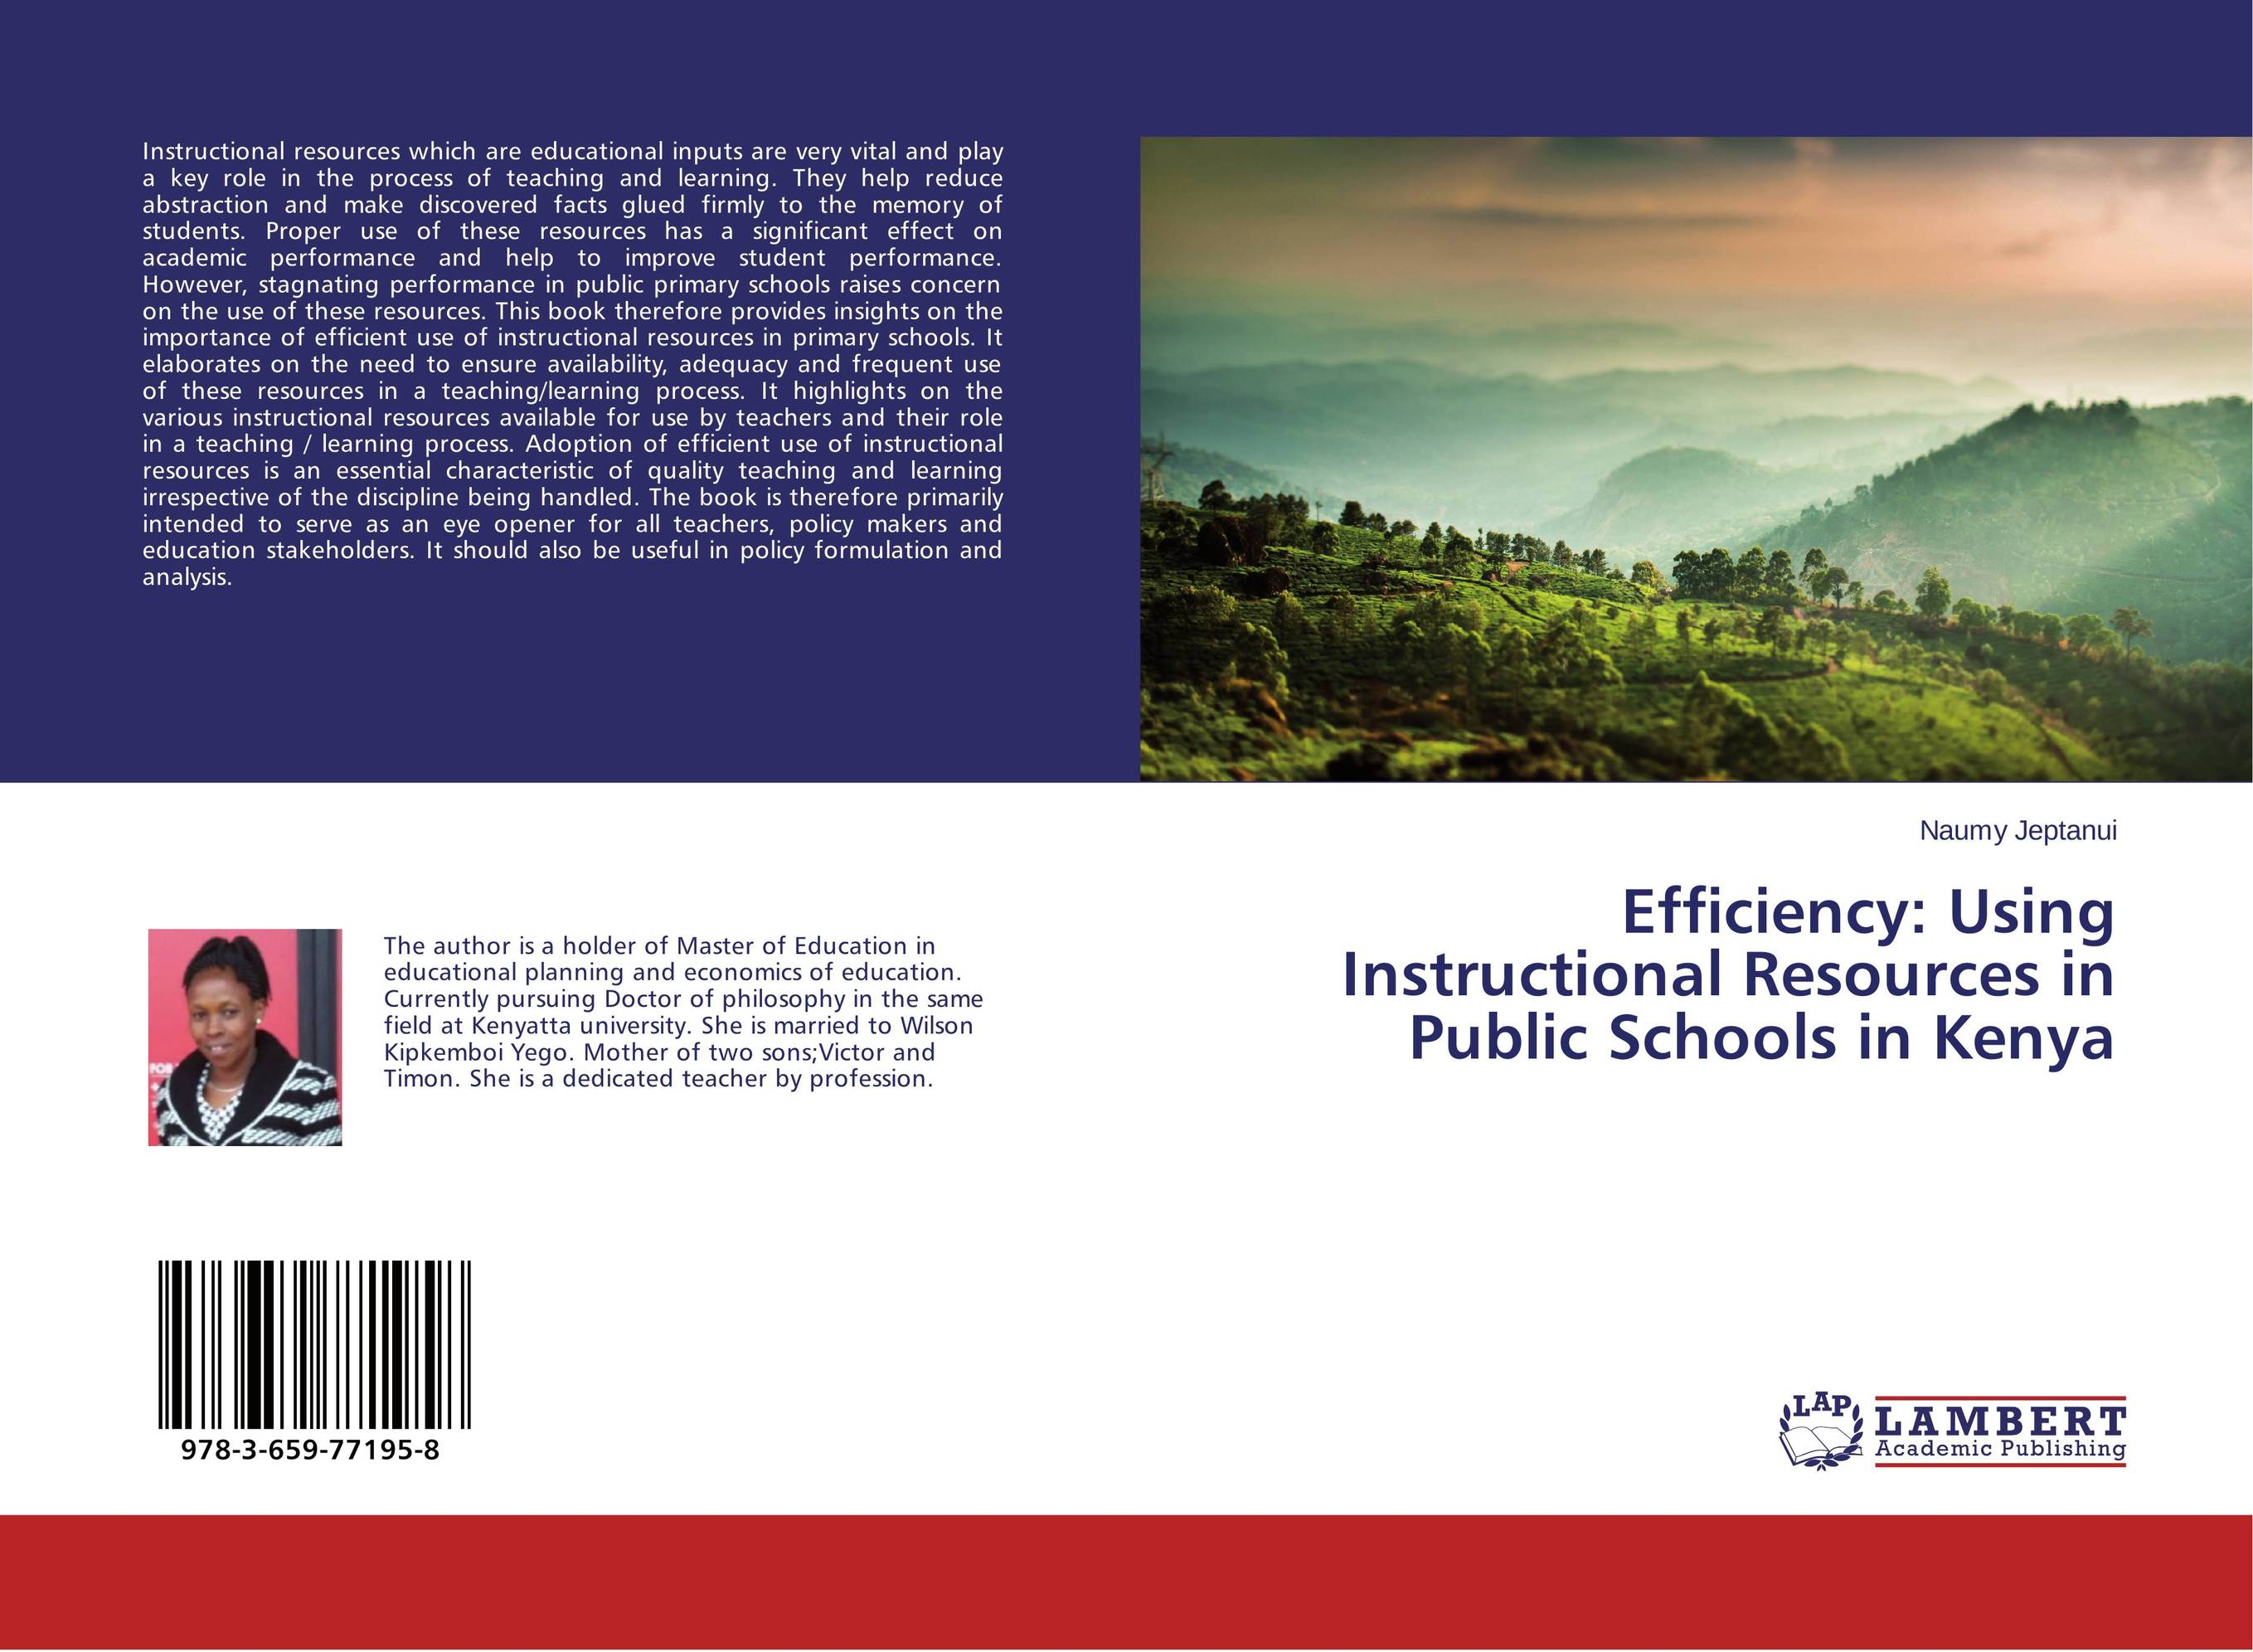 Efficiency: Using Instructional Resources in Public Schools in Kenya learning resources набор пробей